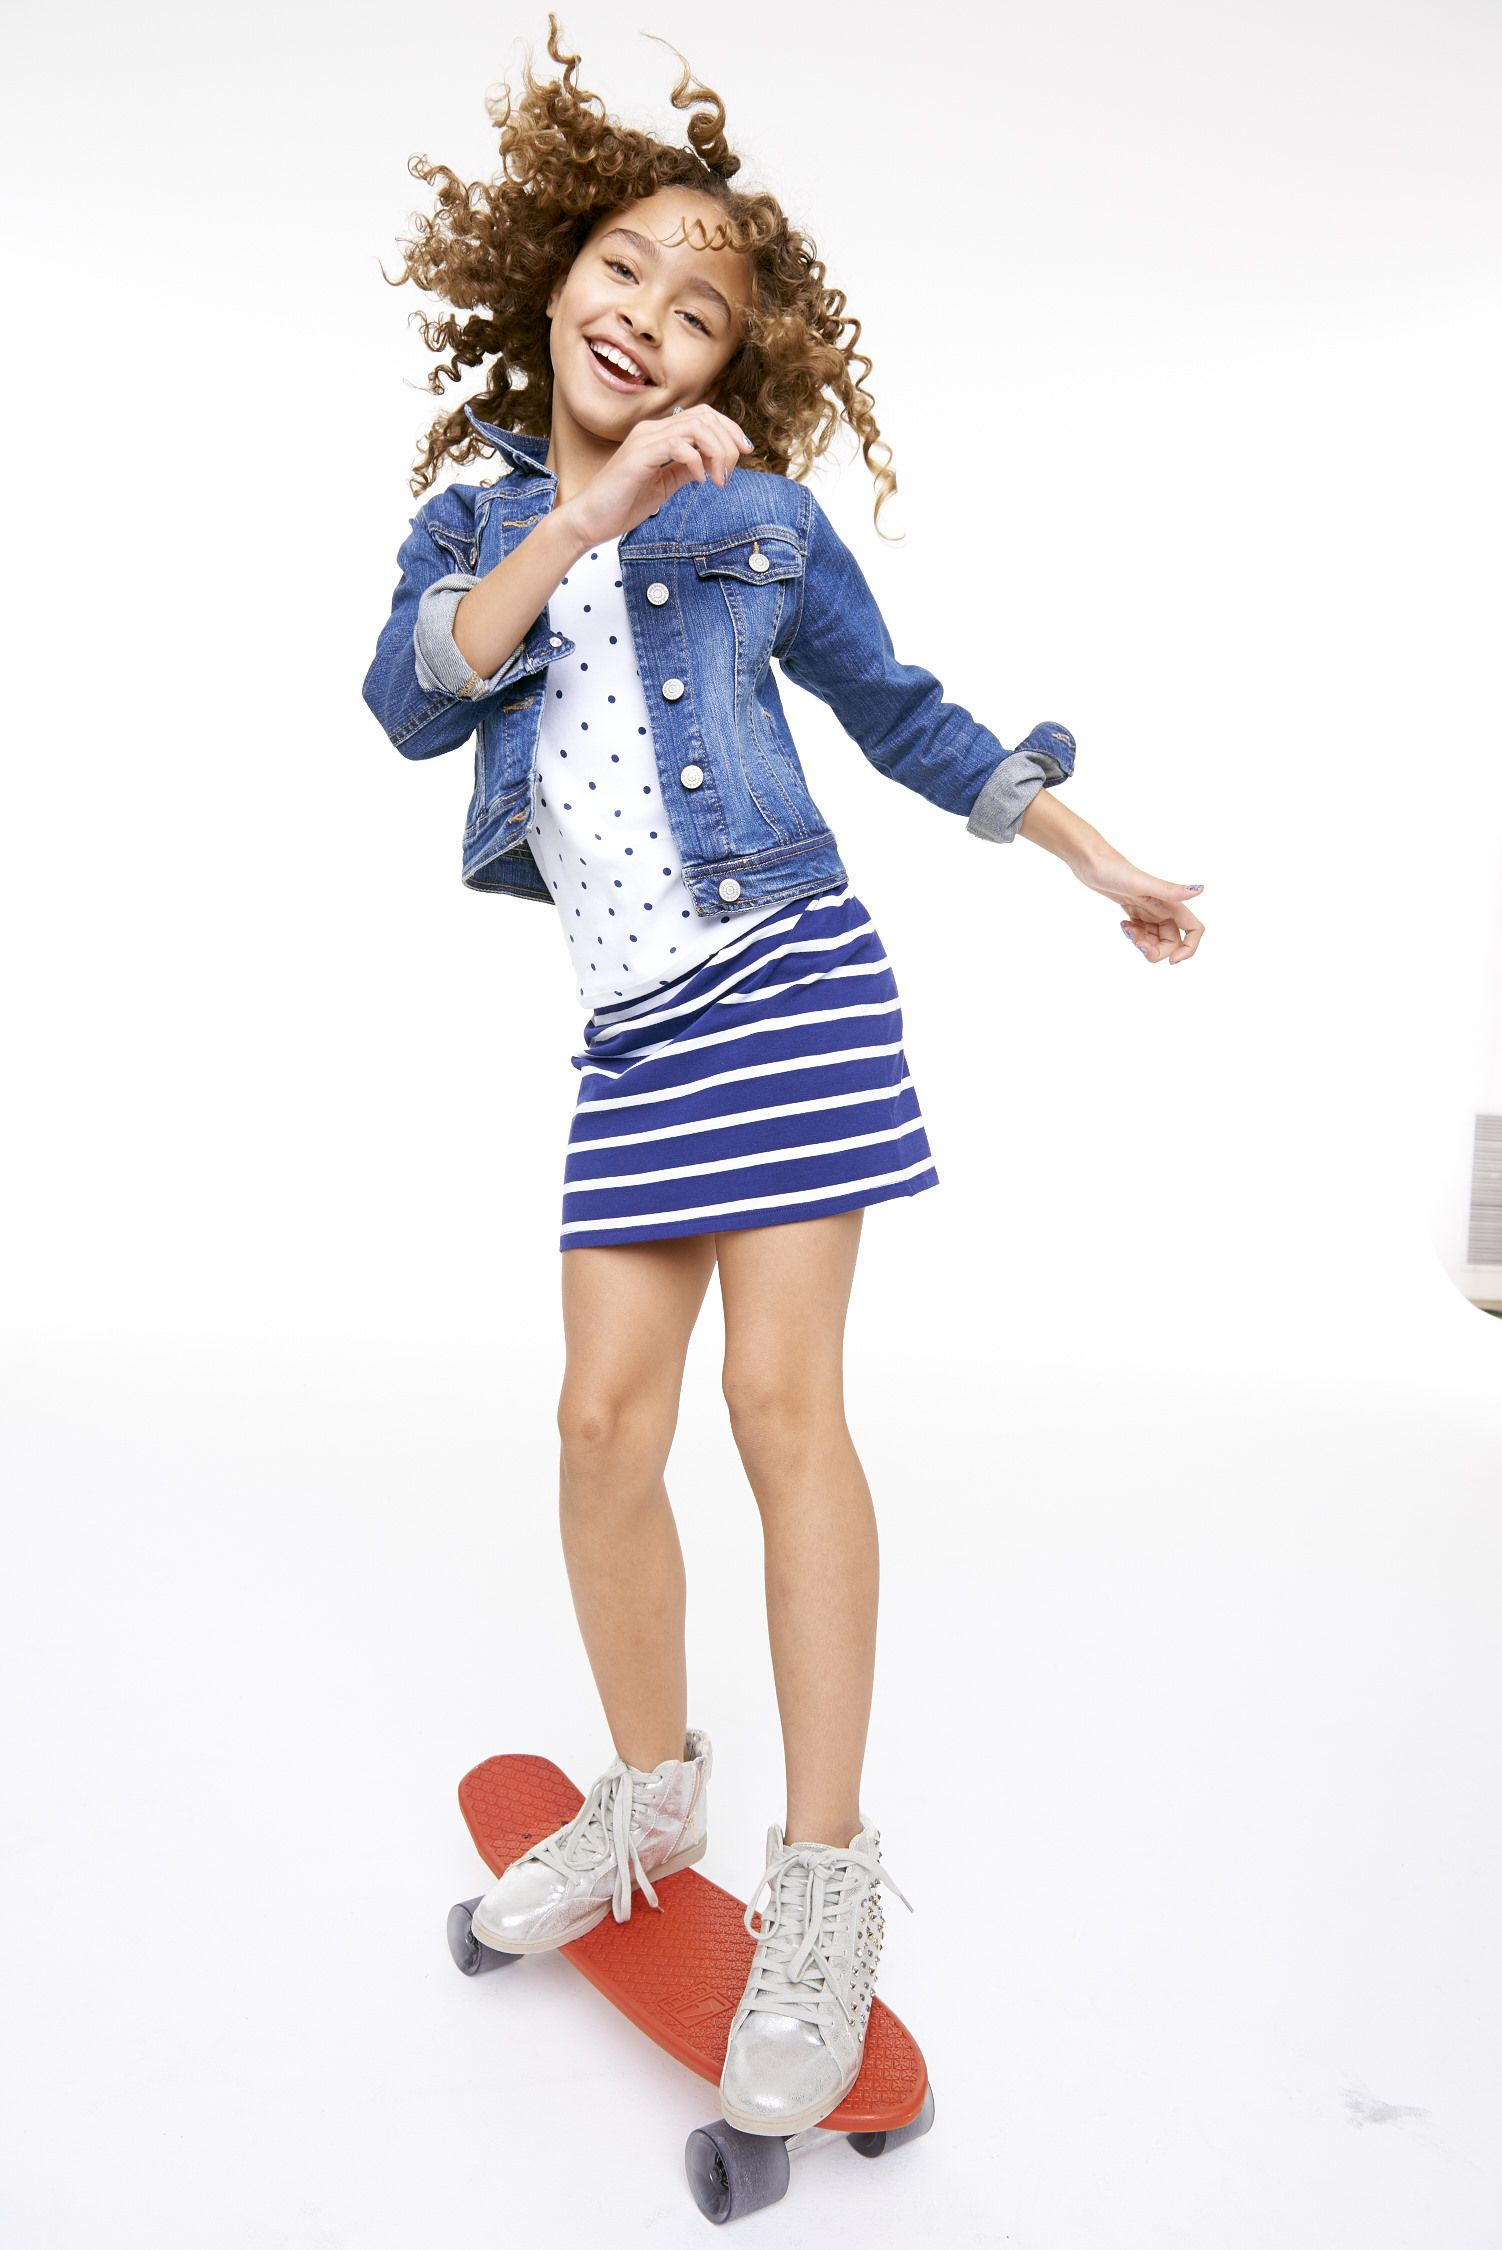 Kids Outfits Clothes Fashion: Totally Nautical. Snag Fresh Spring Looks For Her At Up To